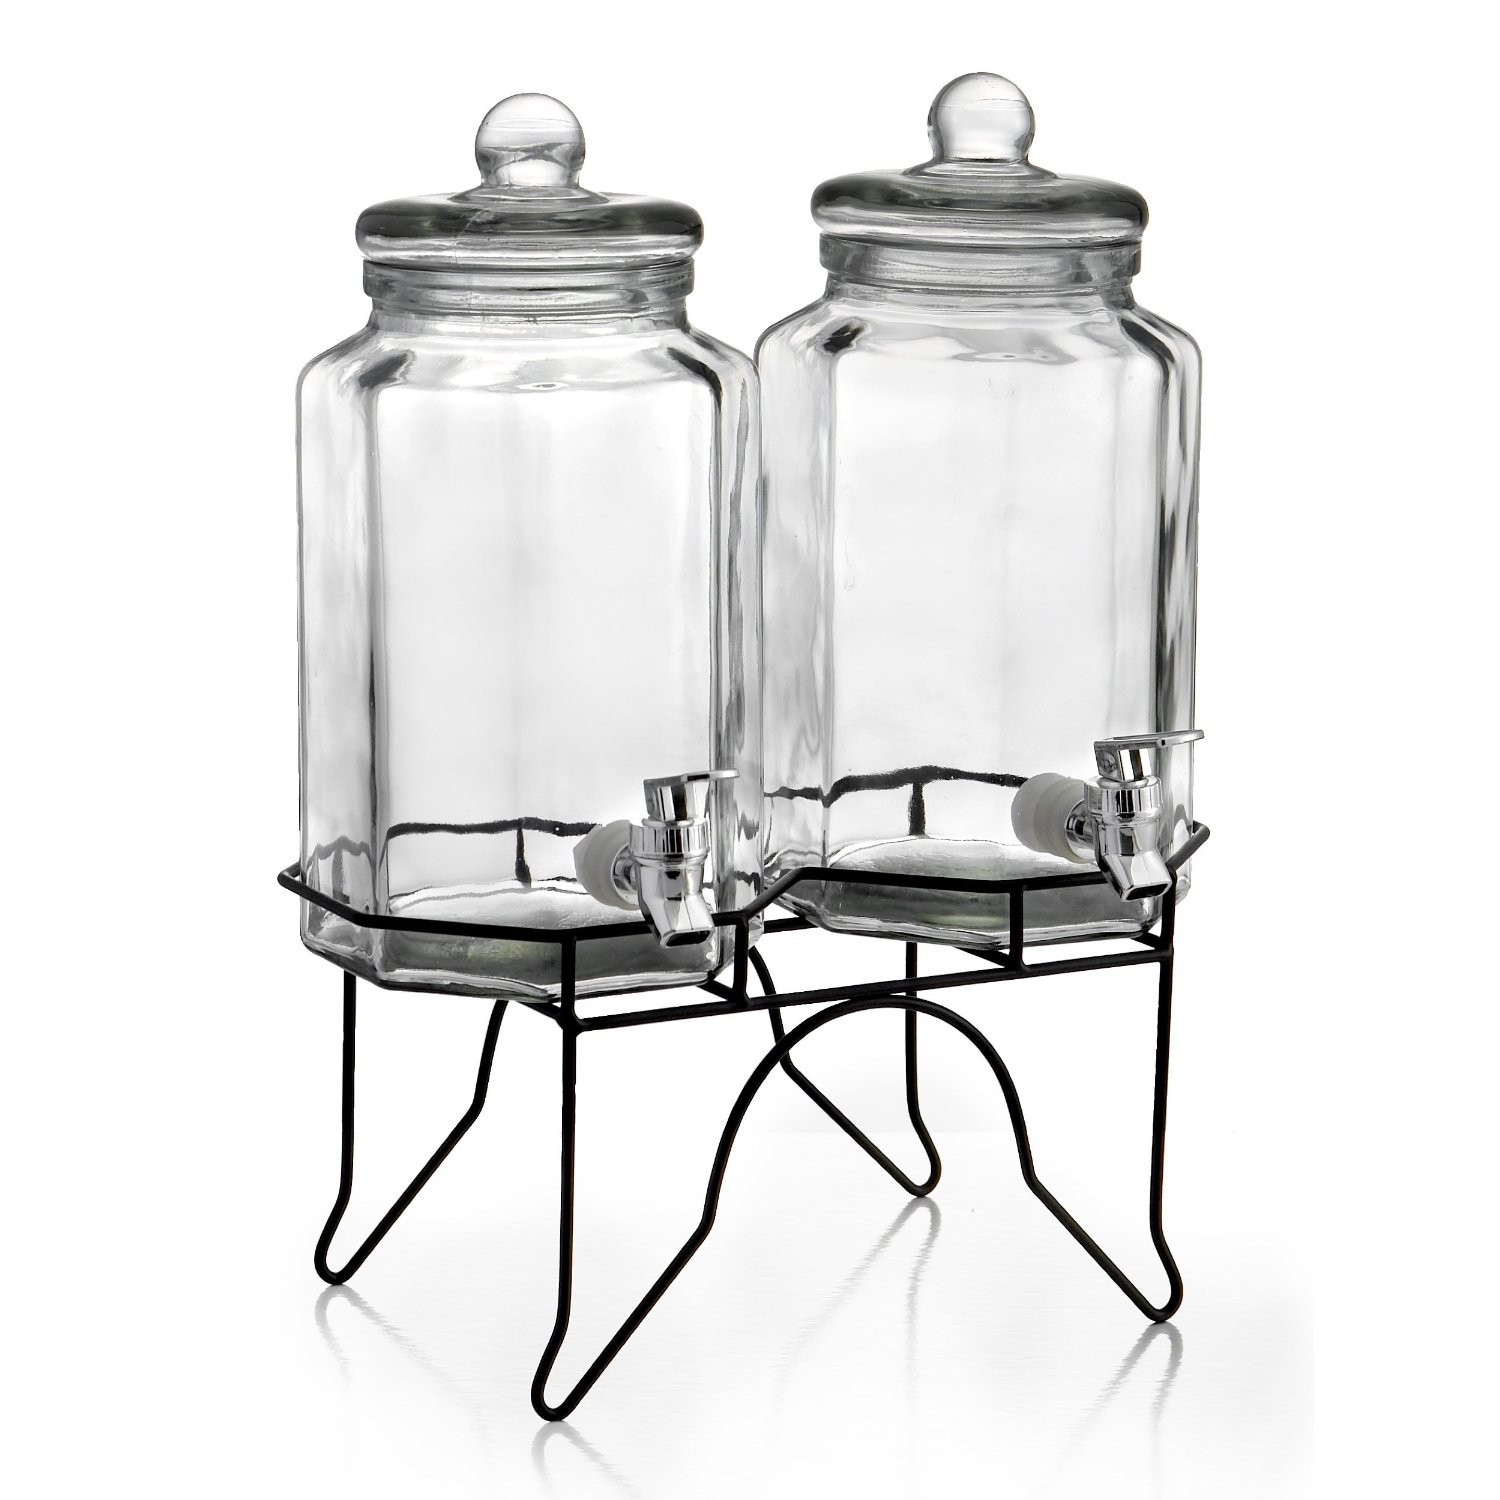 Jay Import 210927-GB Style Setter Laredo Octagon Double Beverage Dispenser Set with Stand